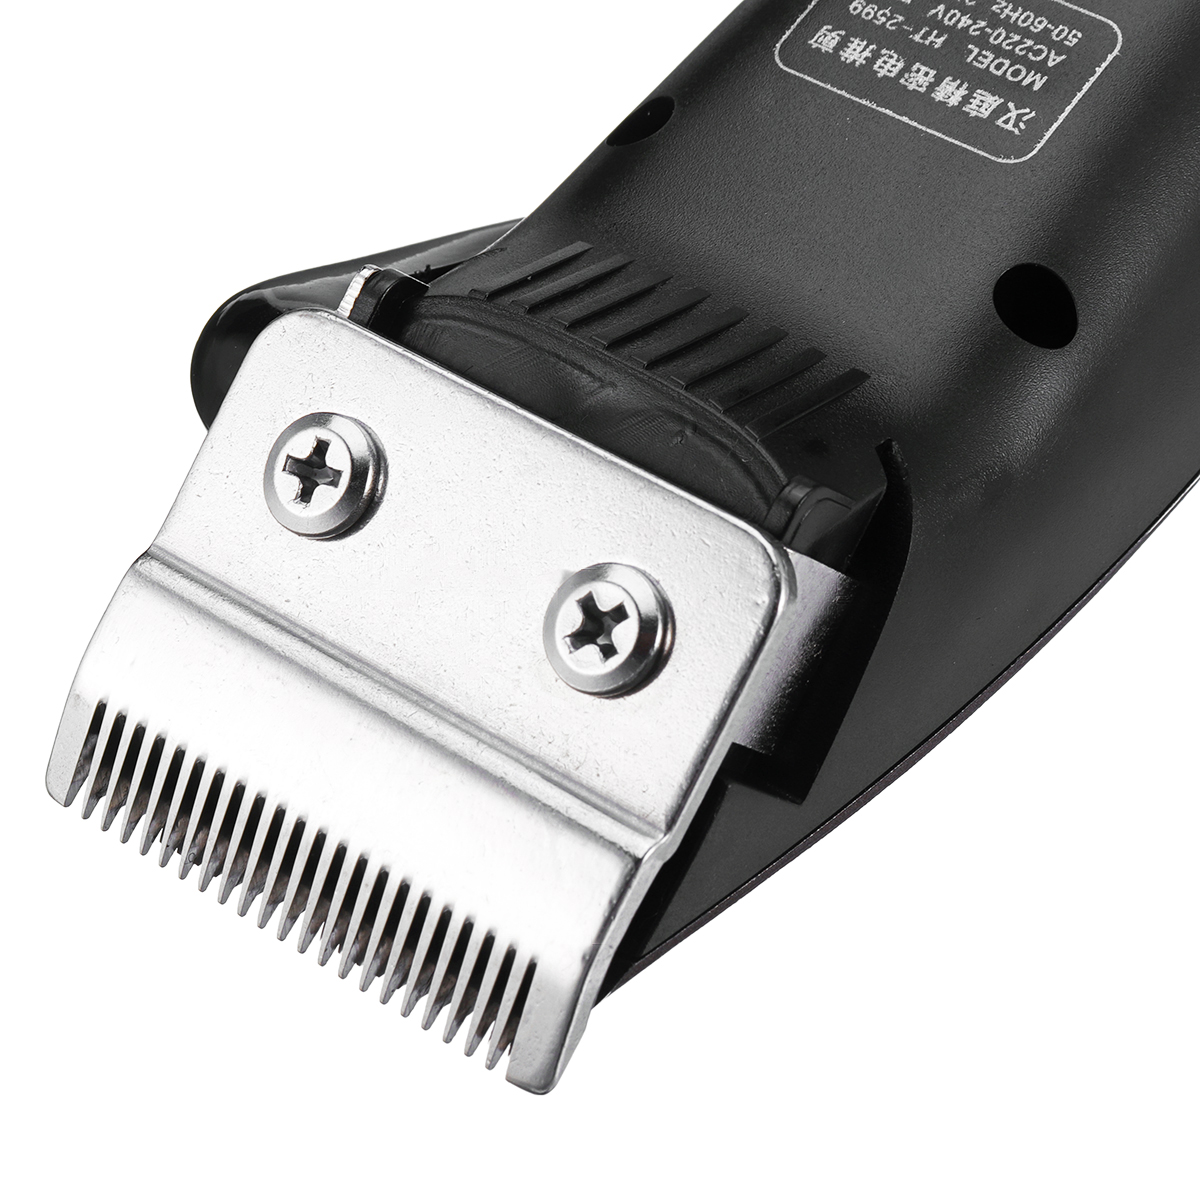 Powerful 35W Professional Electric Pet Clipper Dog Cat Horse Hair Trimmer Comb Grooming